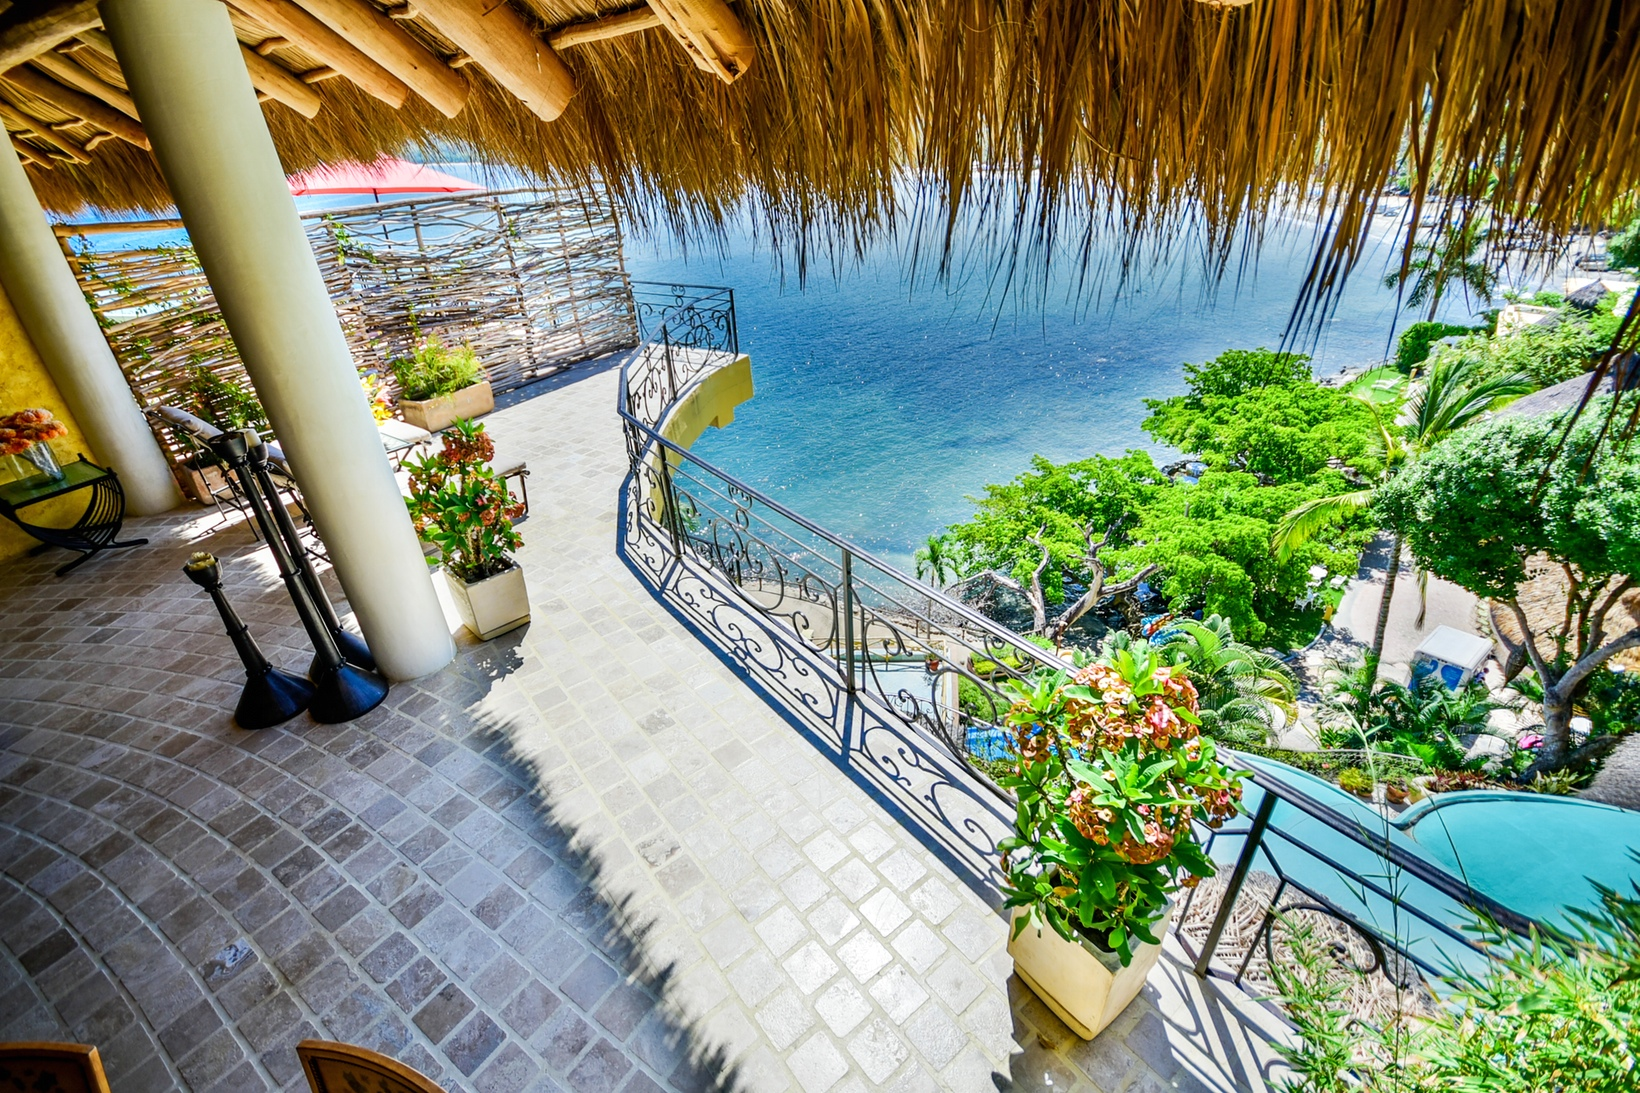 Villa Sirenita at Amor Boutique Hotel in Sayulita Mexico. Gorgeous 1 bedroom ocean view with private terrace.